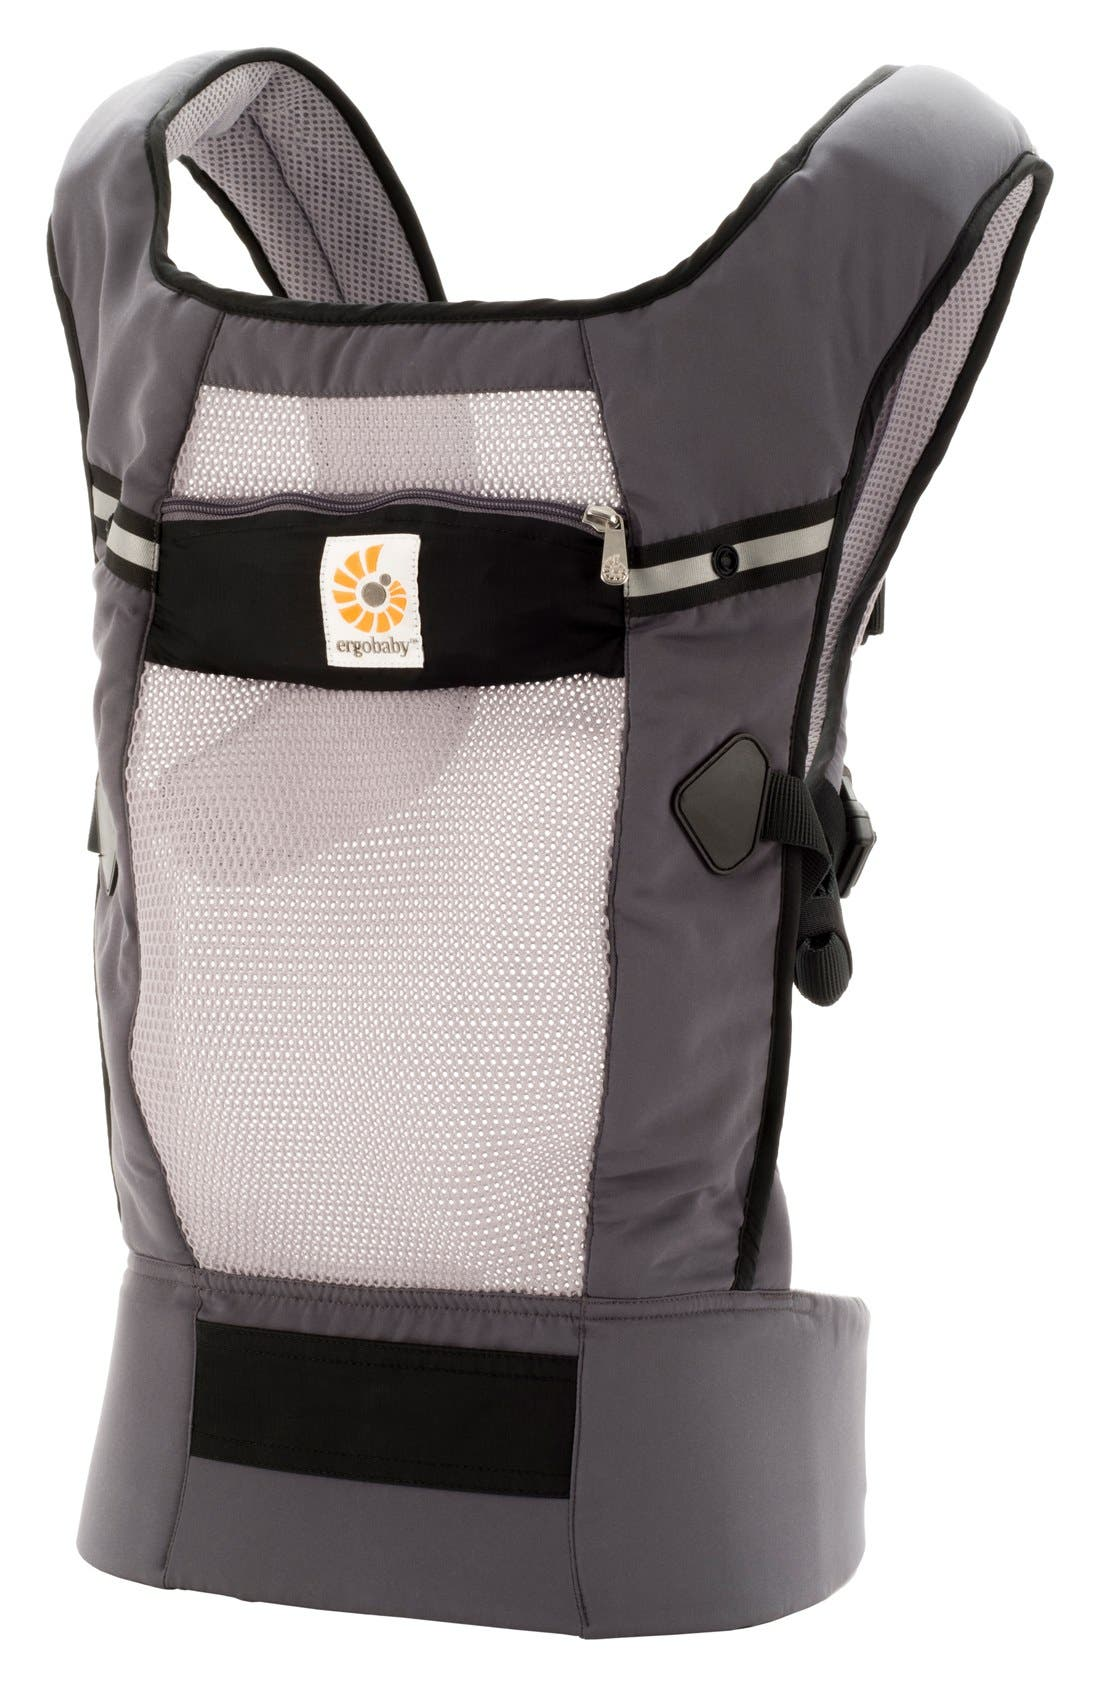 ERGOBABY,                             'Performance' Baby Carrier,                             Alternate thumbnail 2, color,                             025